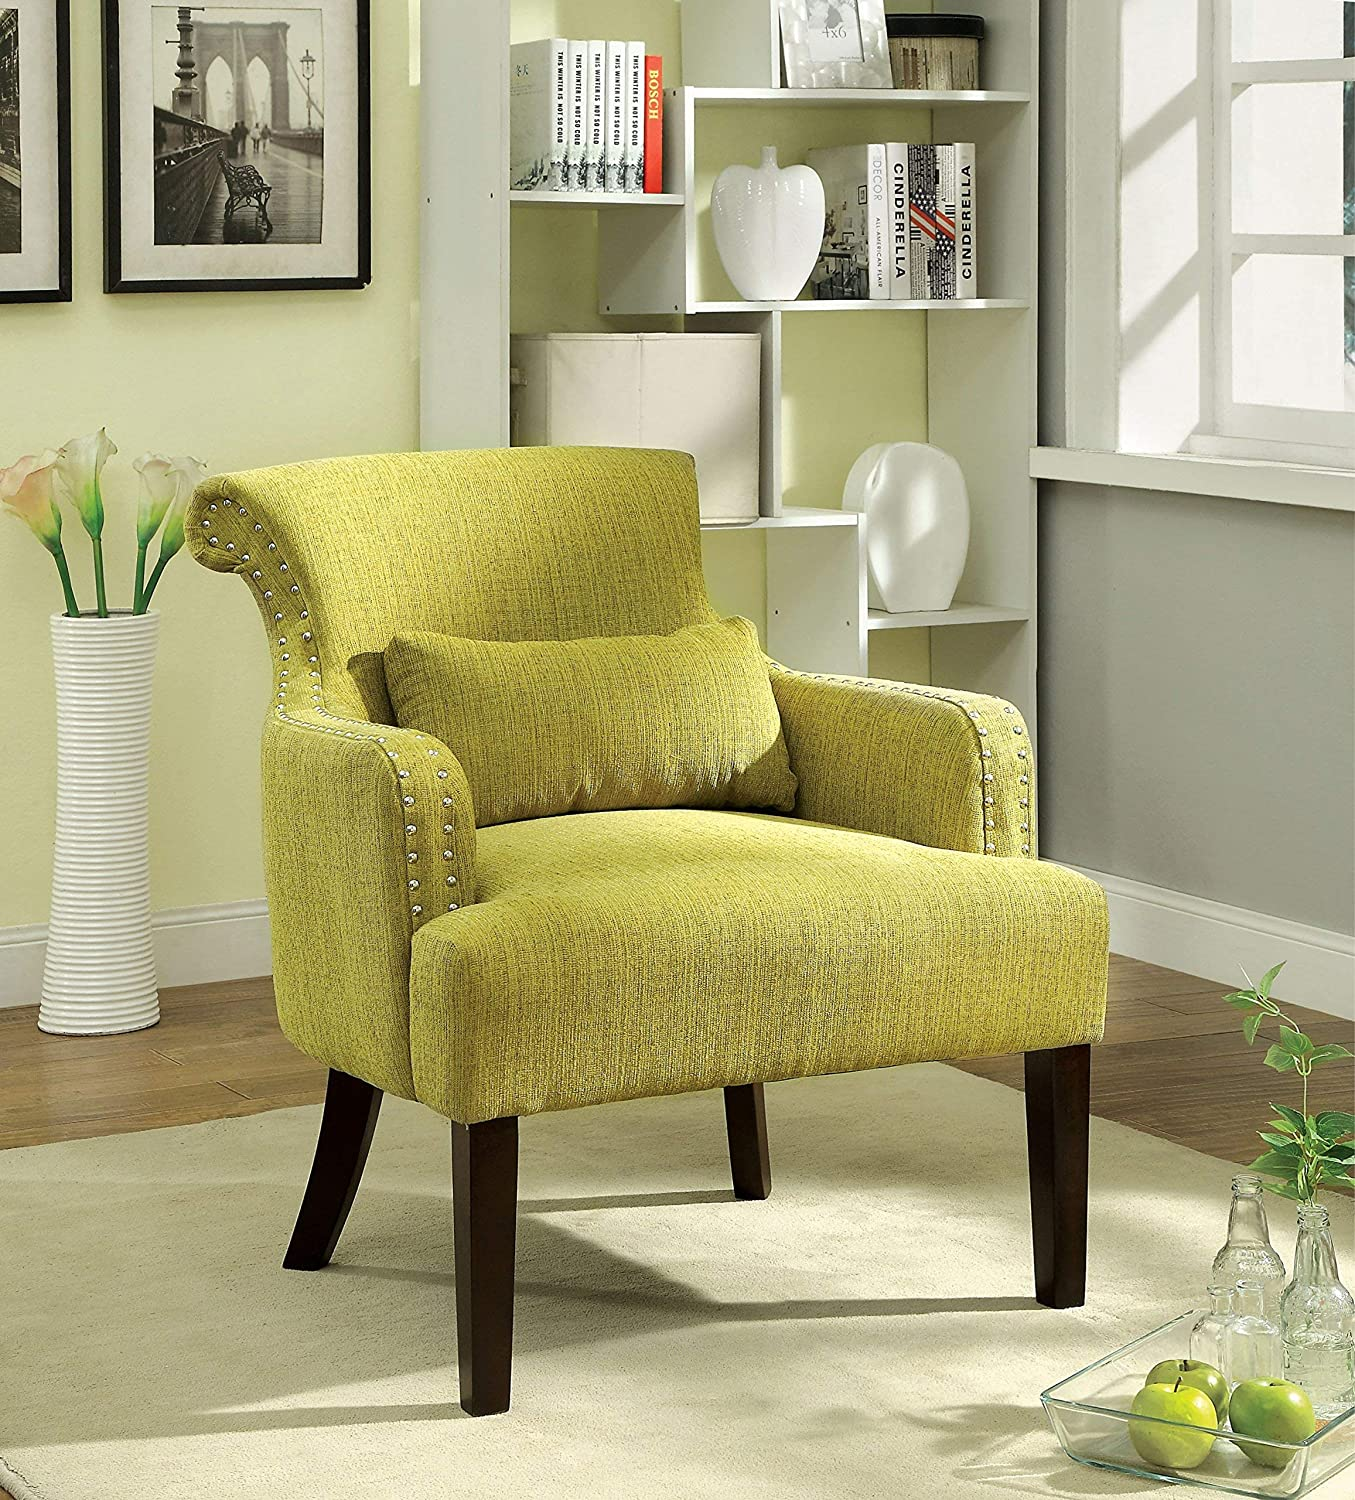 Furniture of America Venize Contemporary Style Accent Chair, Green